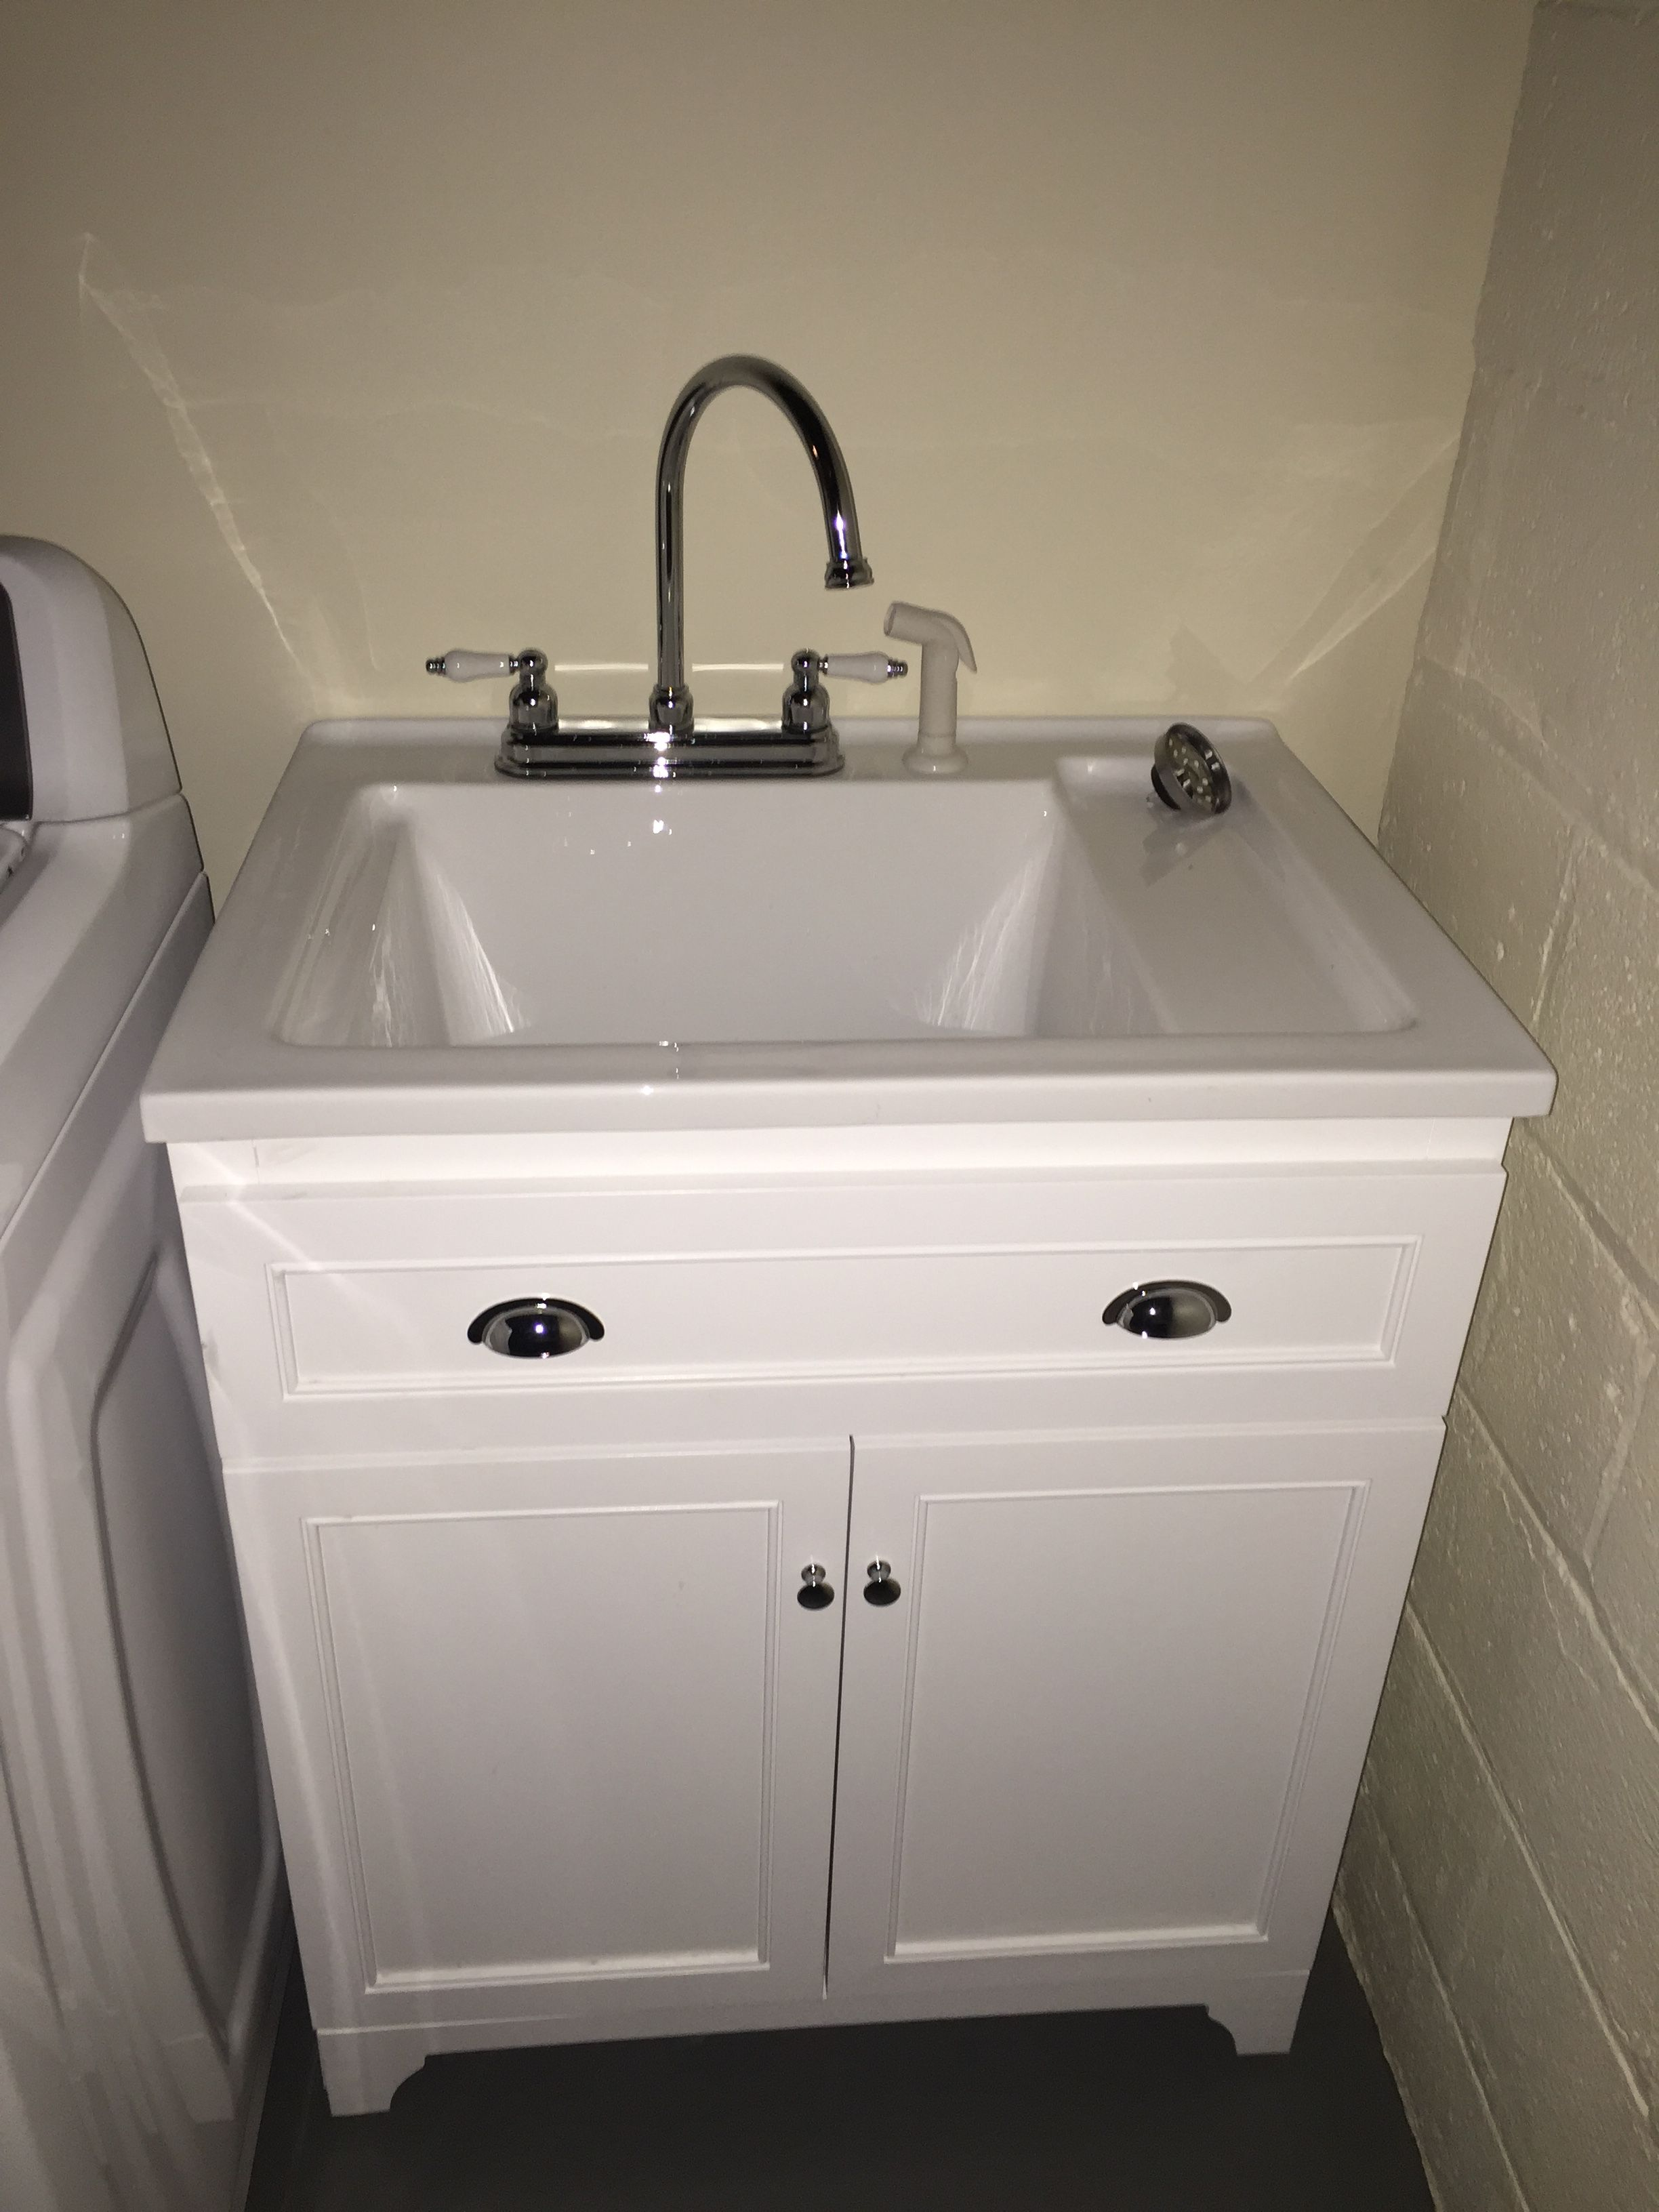 Basement laundry room remodel. We installed track lighting, washtub with faucet, painted walls and ceiling. #bigbearremodeling